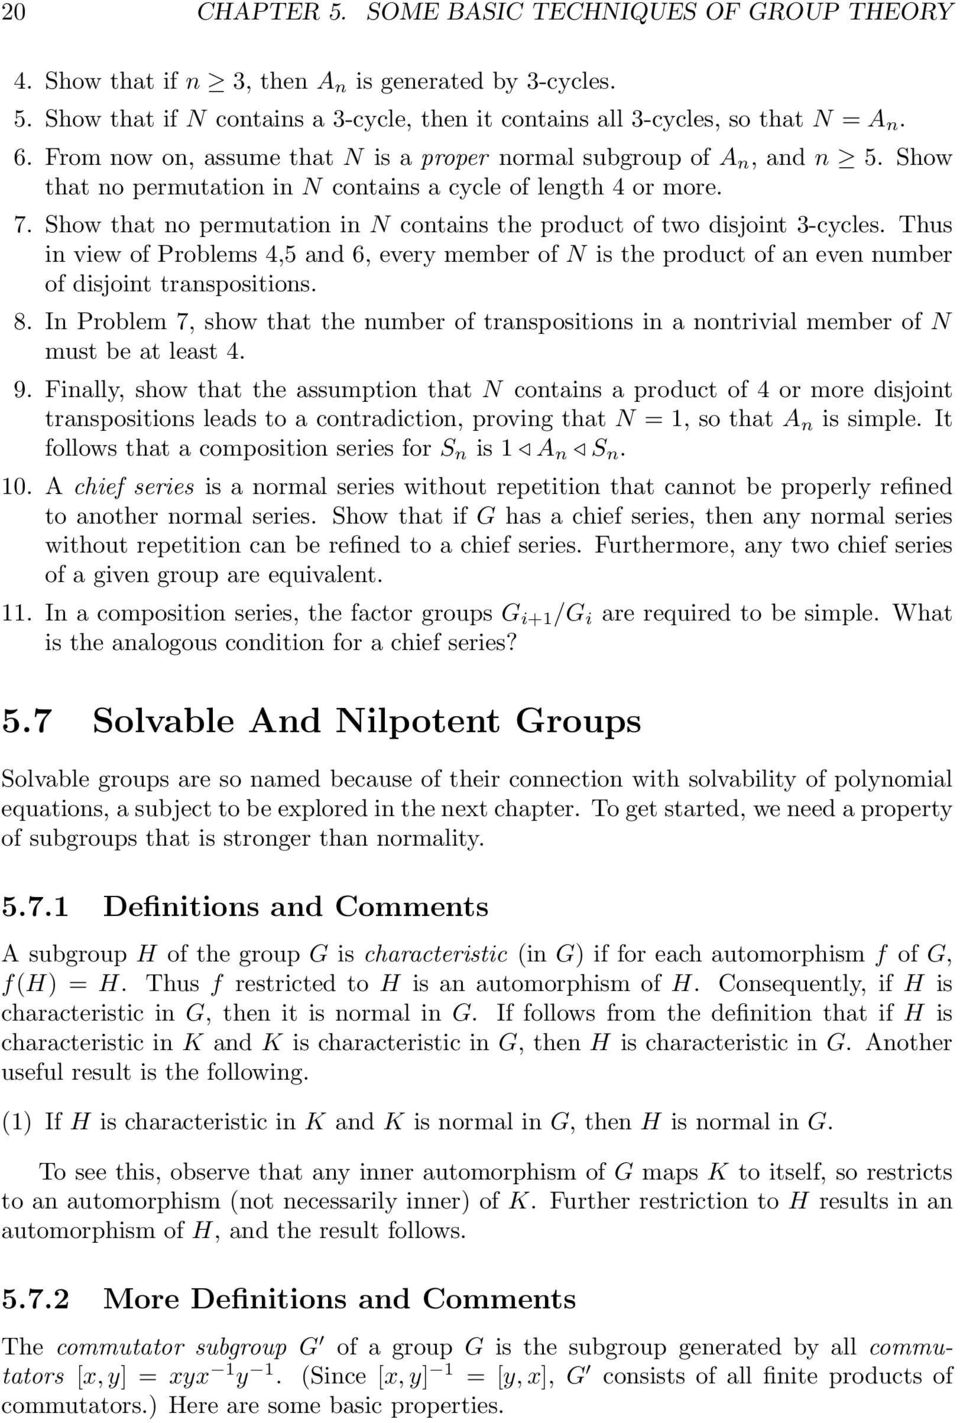 Show that no permutation in N contains the product of two disjoint 3-cycles. Thus in view of Problems 4,5 and 6, every member of N is the product of an even number of disjoint transpositions. 8.